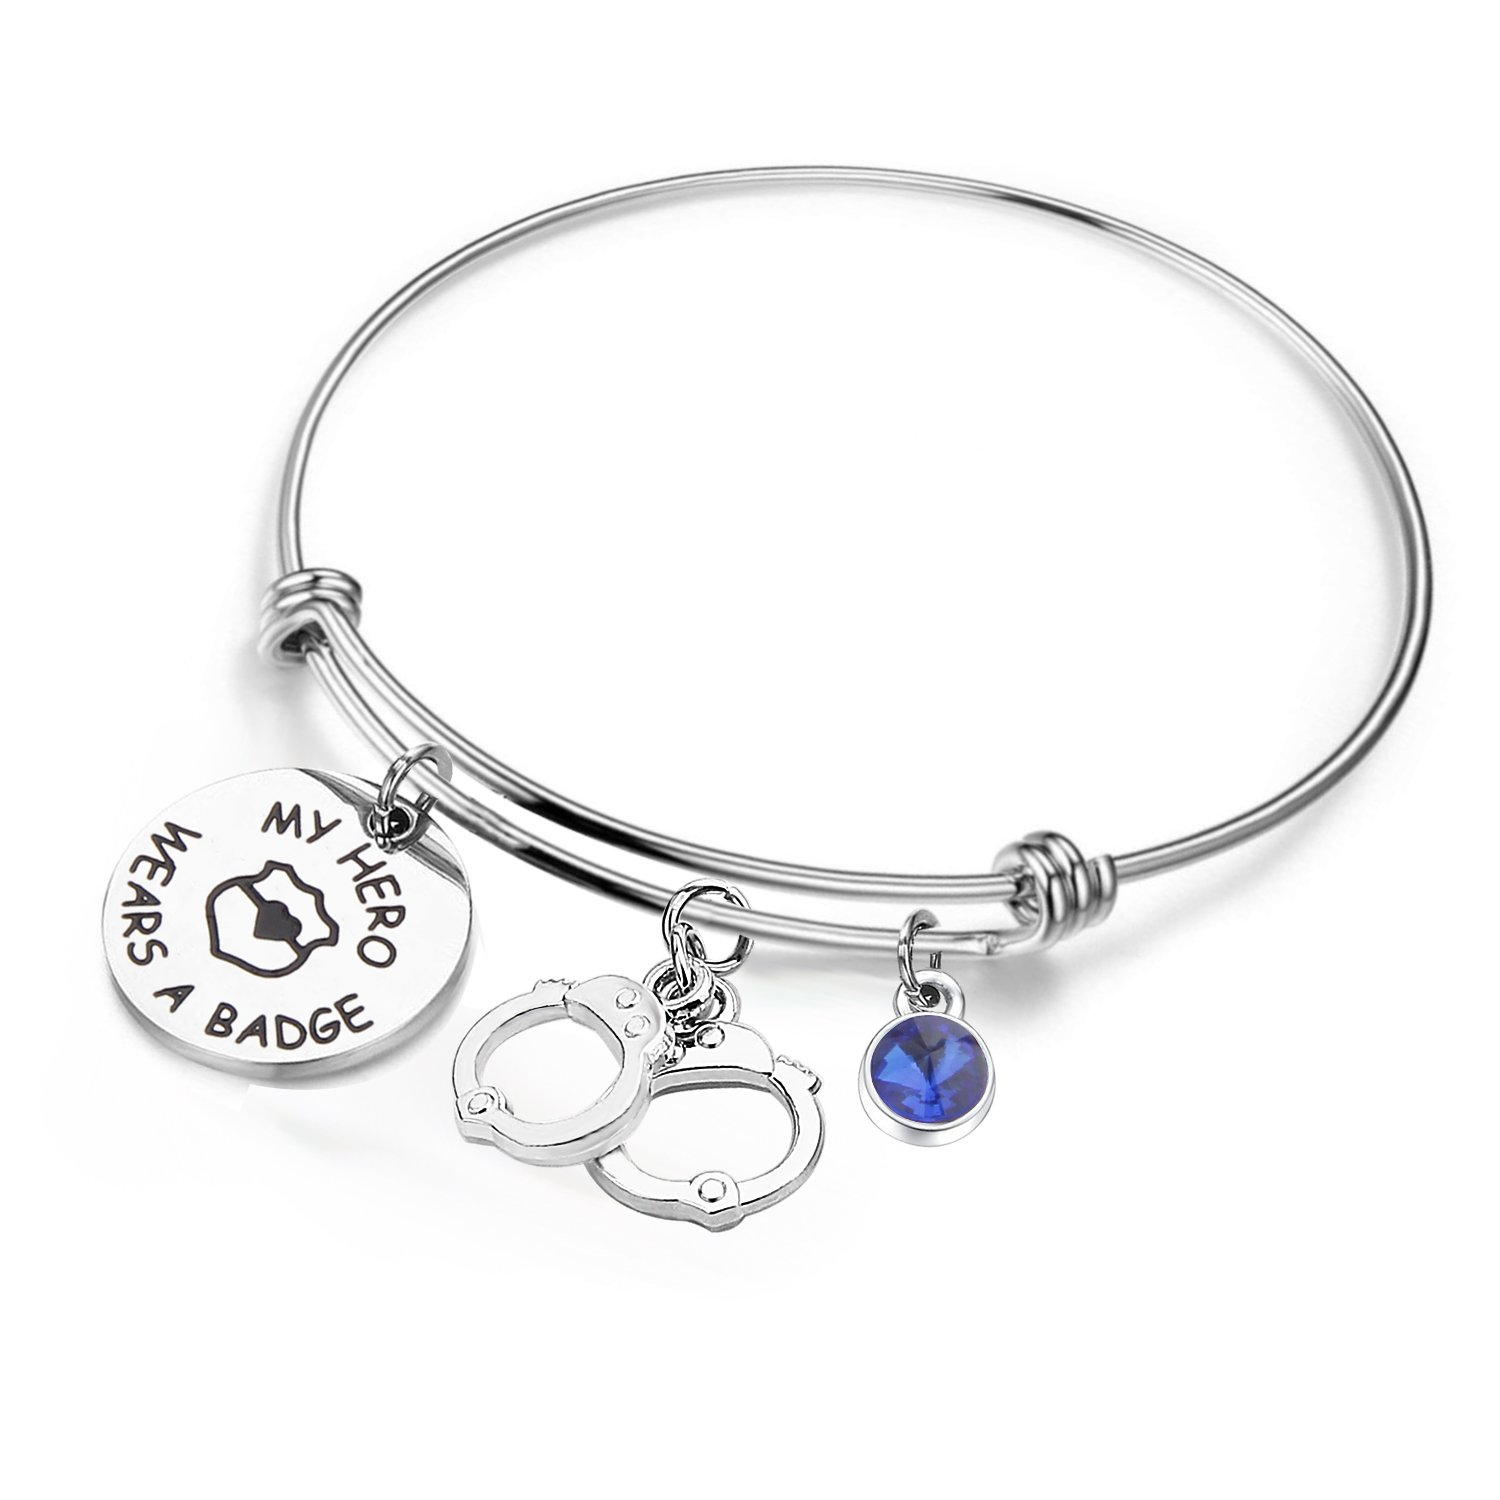 KUIYAI My Hero Wears a Badge Police Bracelet with Handcuff Charm Bracelet for Dad Mom (bracelet silver) by KUIYAI (Image #1)